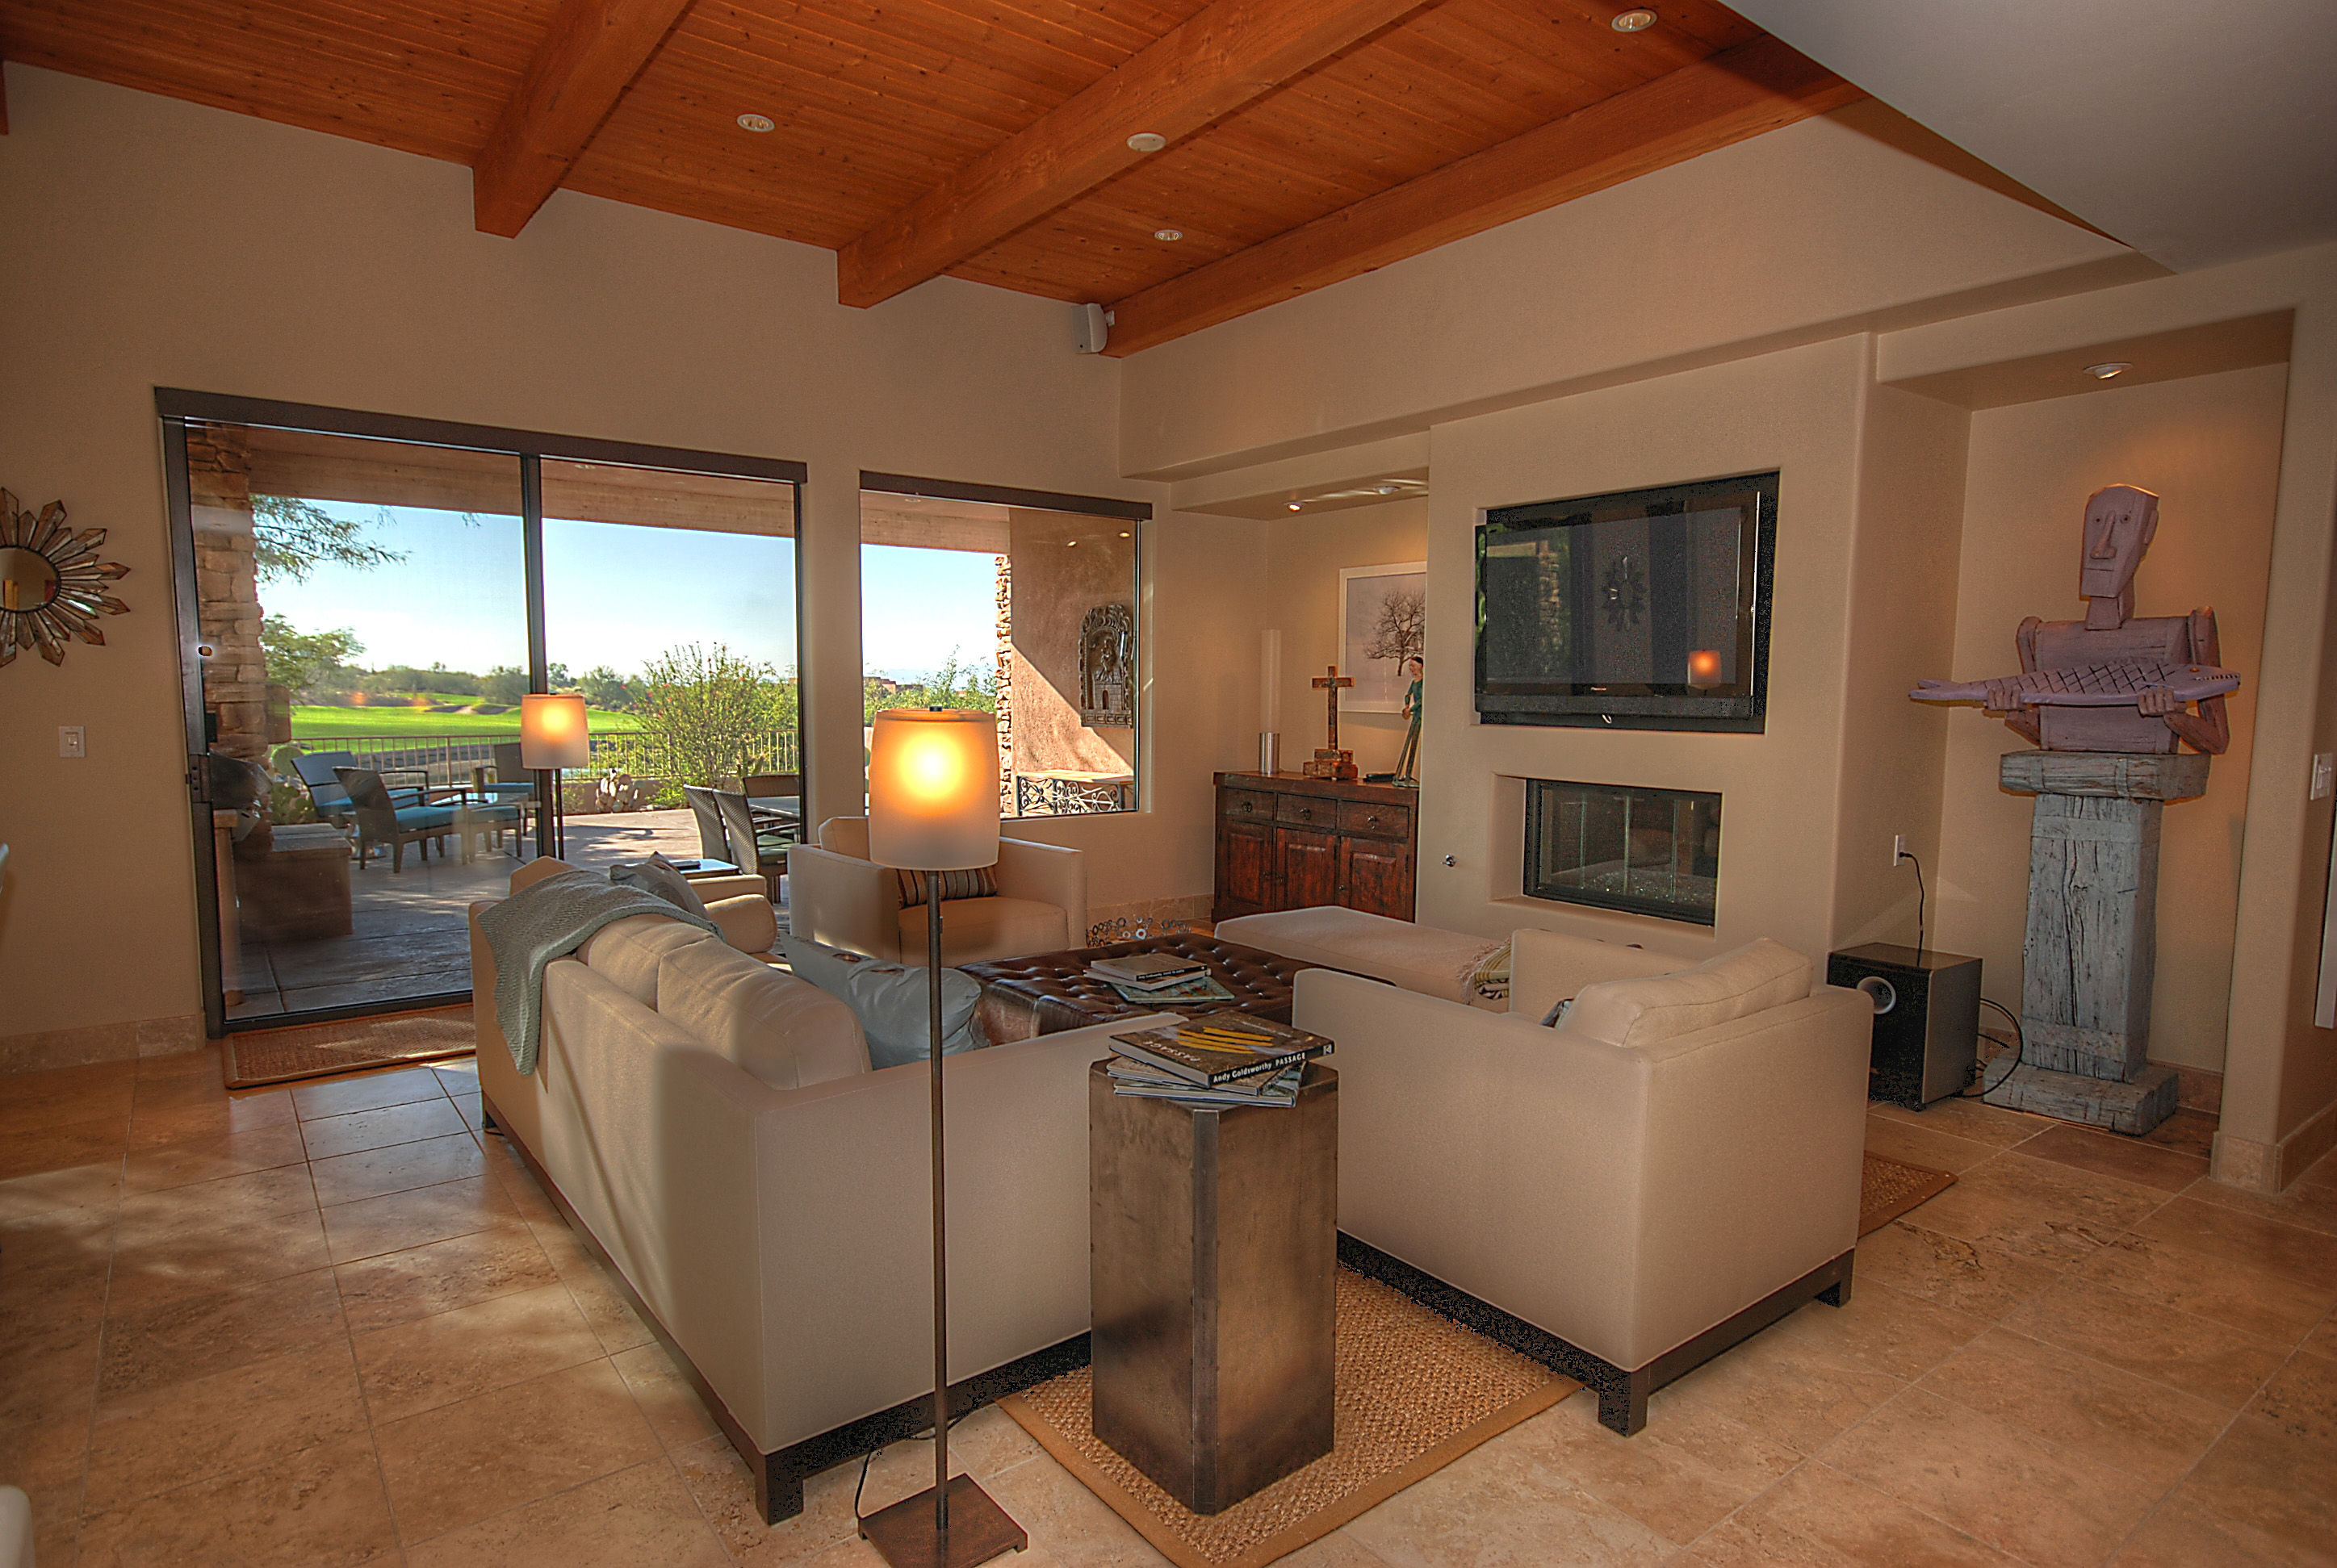 Golf course living room, Oracle, AZ